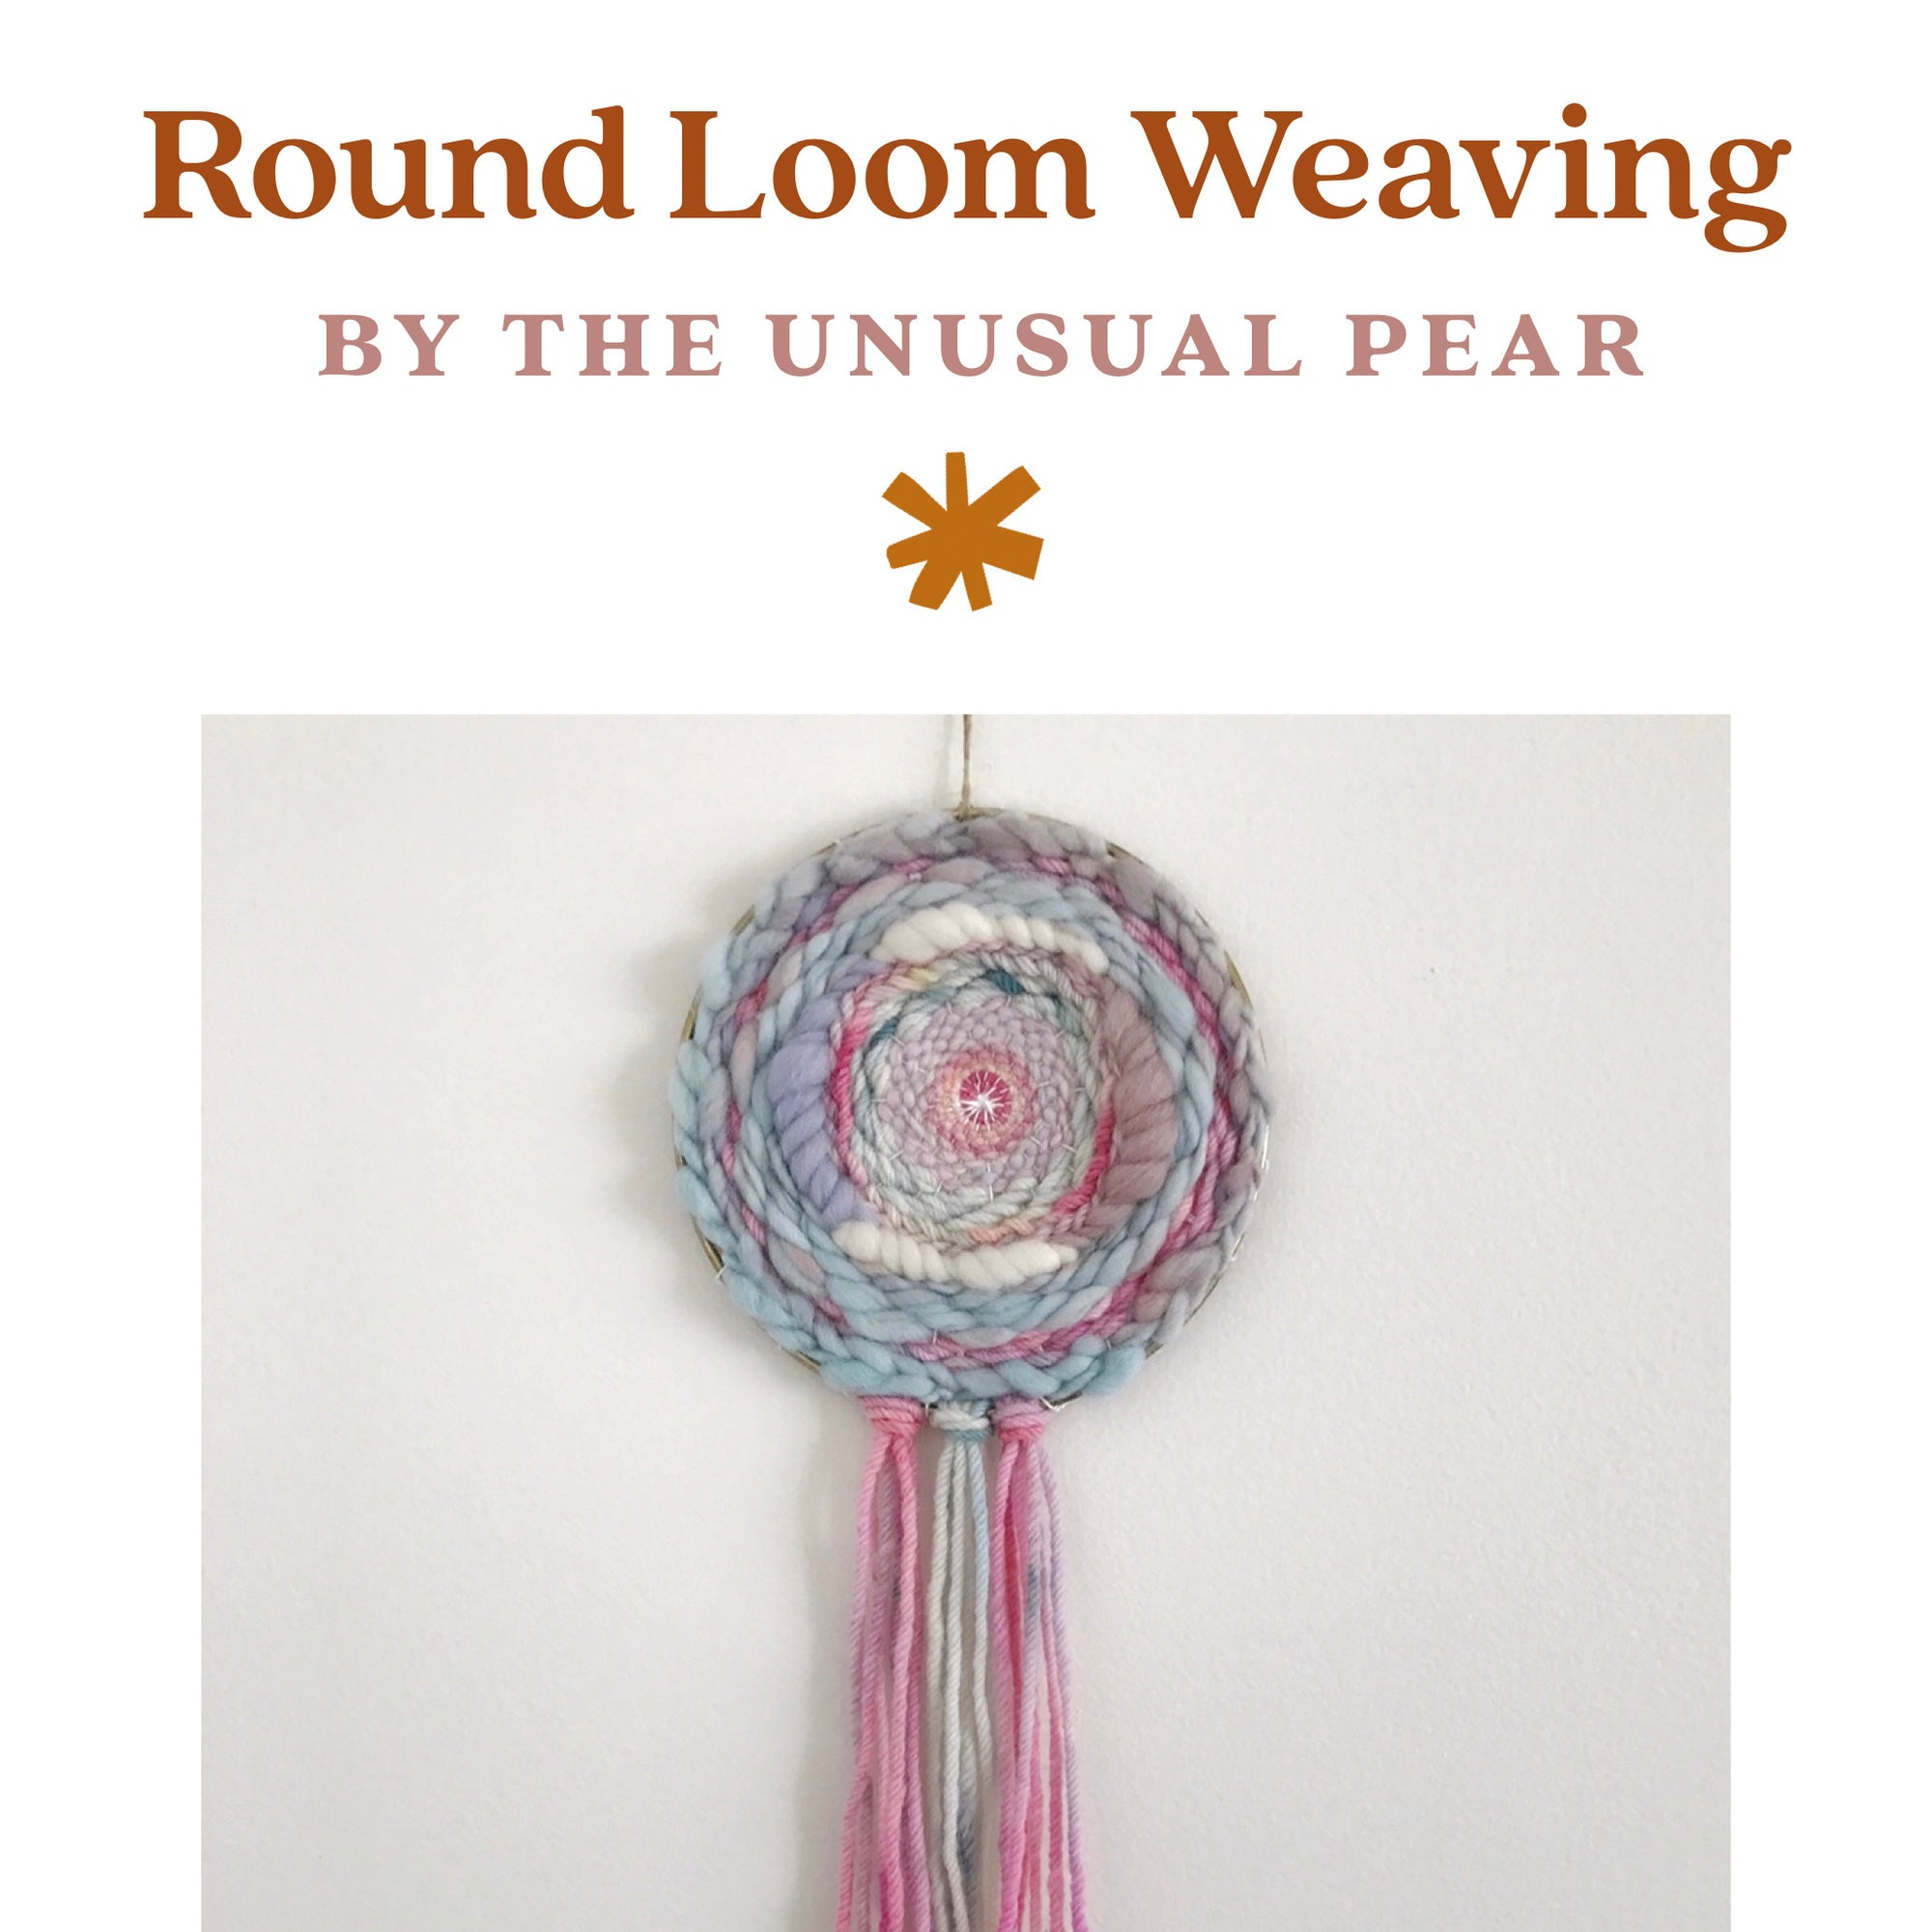 Round Loom Weaving